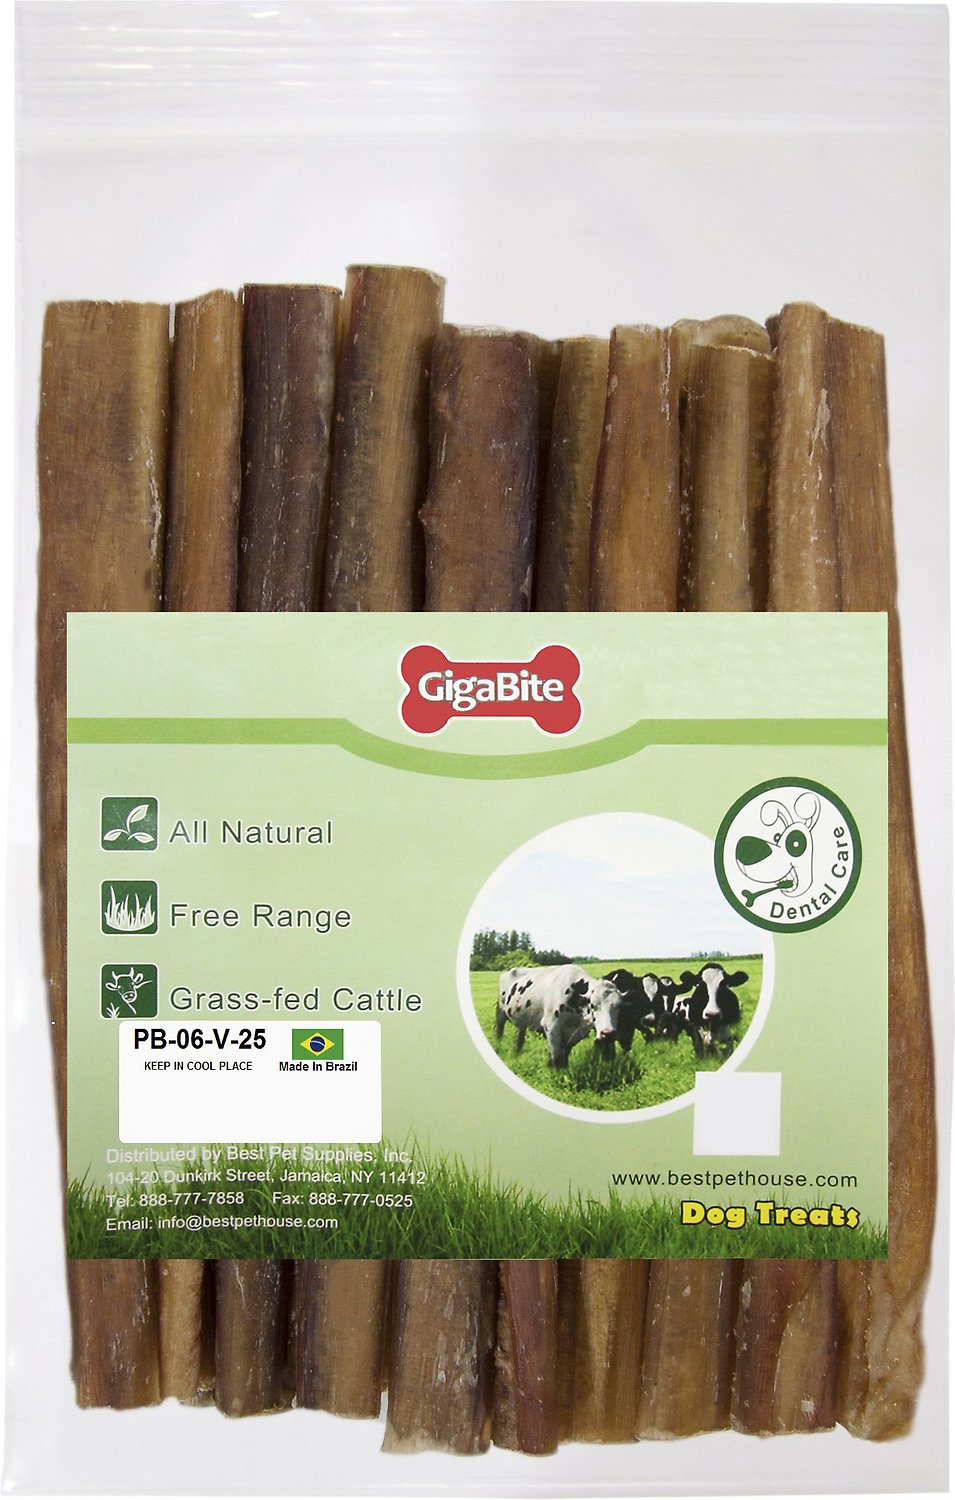 best pet supplies gigabite odor free 6 bully sticks dog treats 25 count. Black Bedroom Furniture Sets. Home Design Ideas